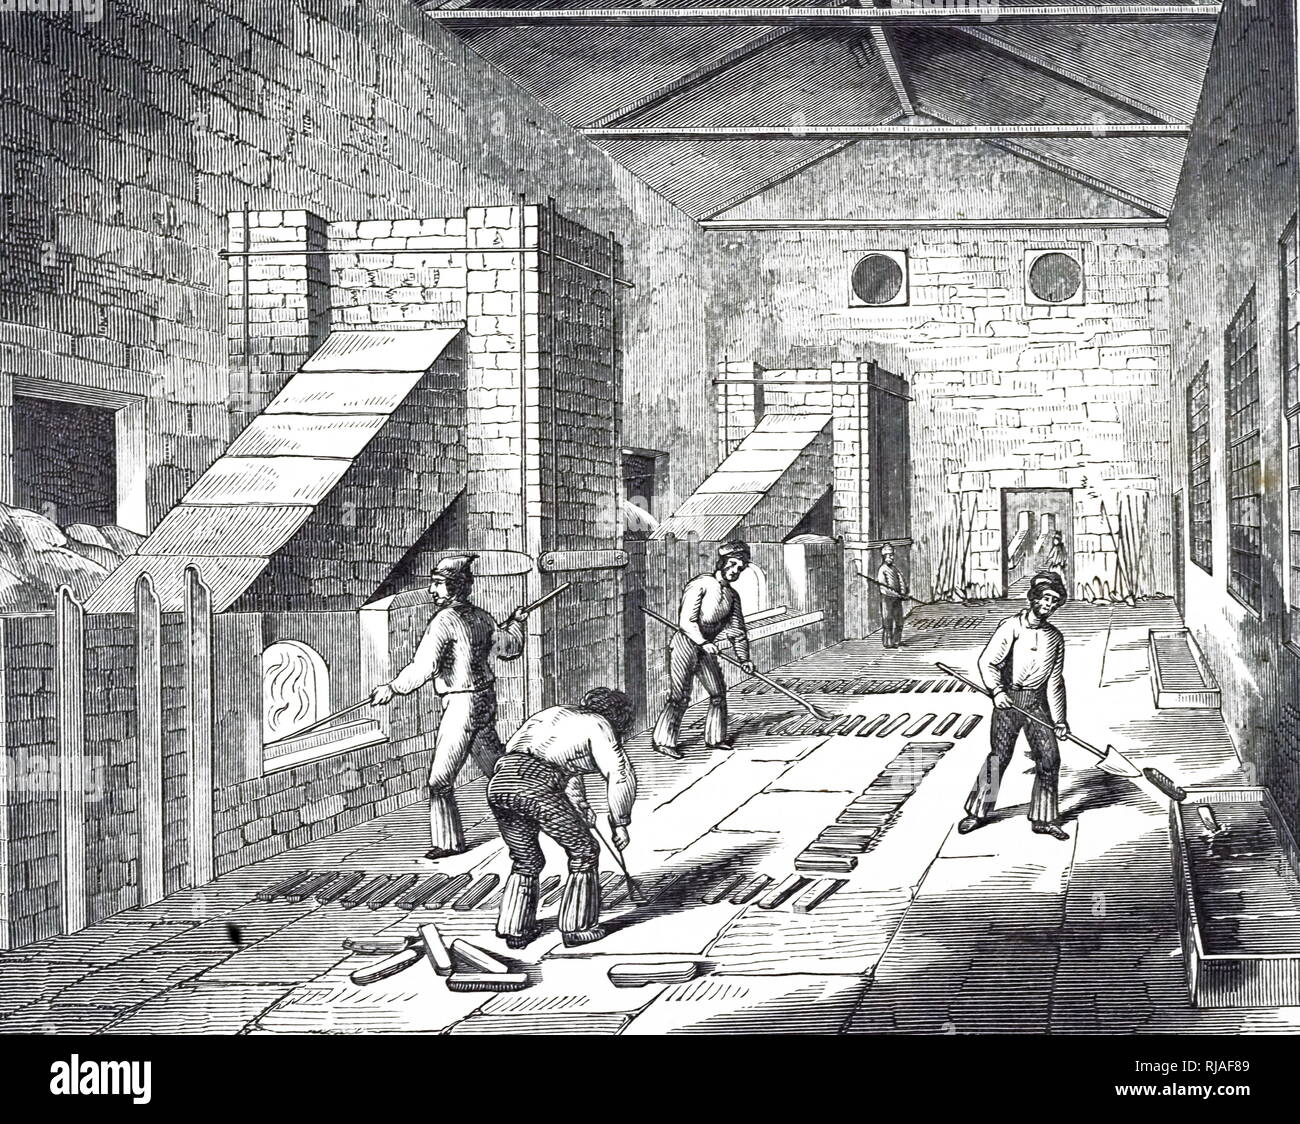 An engraving depicting the casting of purified copper into ingots, St Helens, Lancashire. Dated 19th century - Stock Image